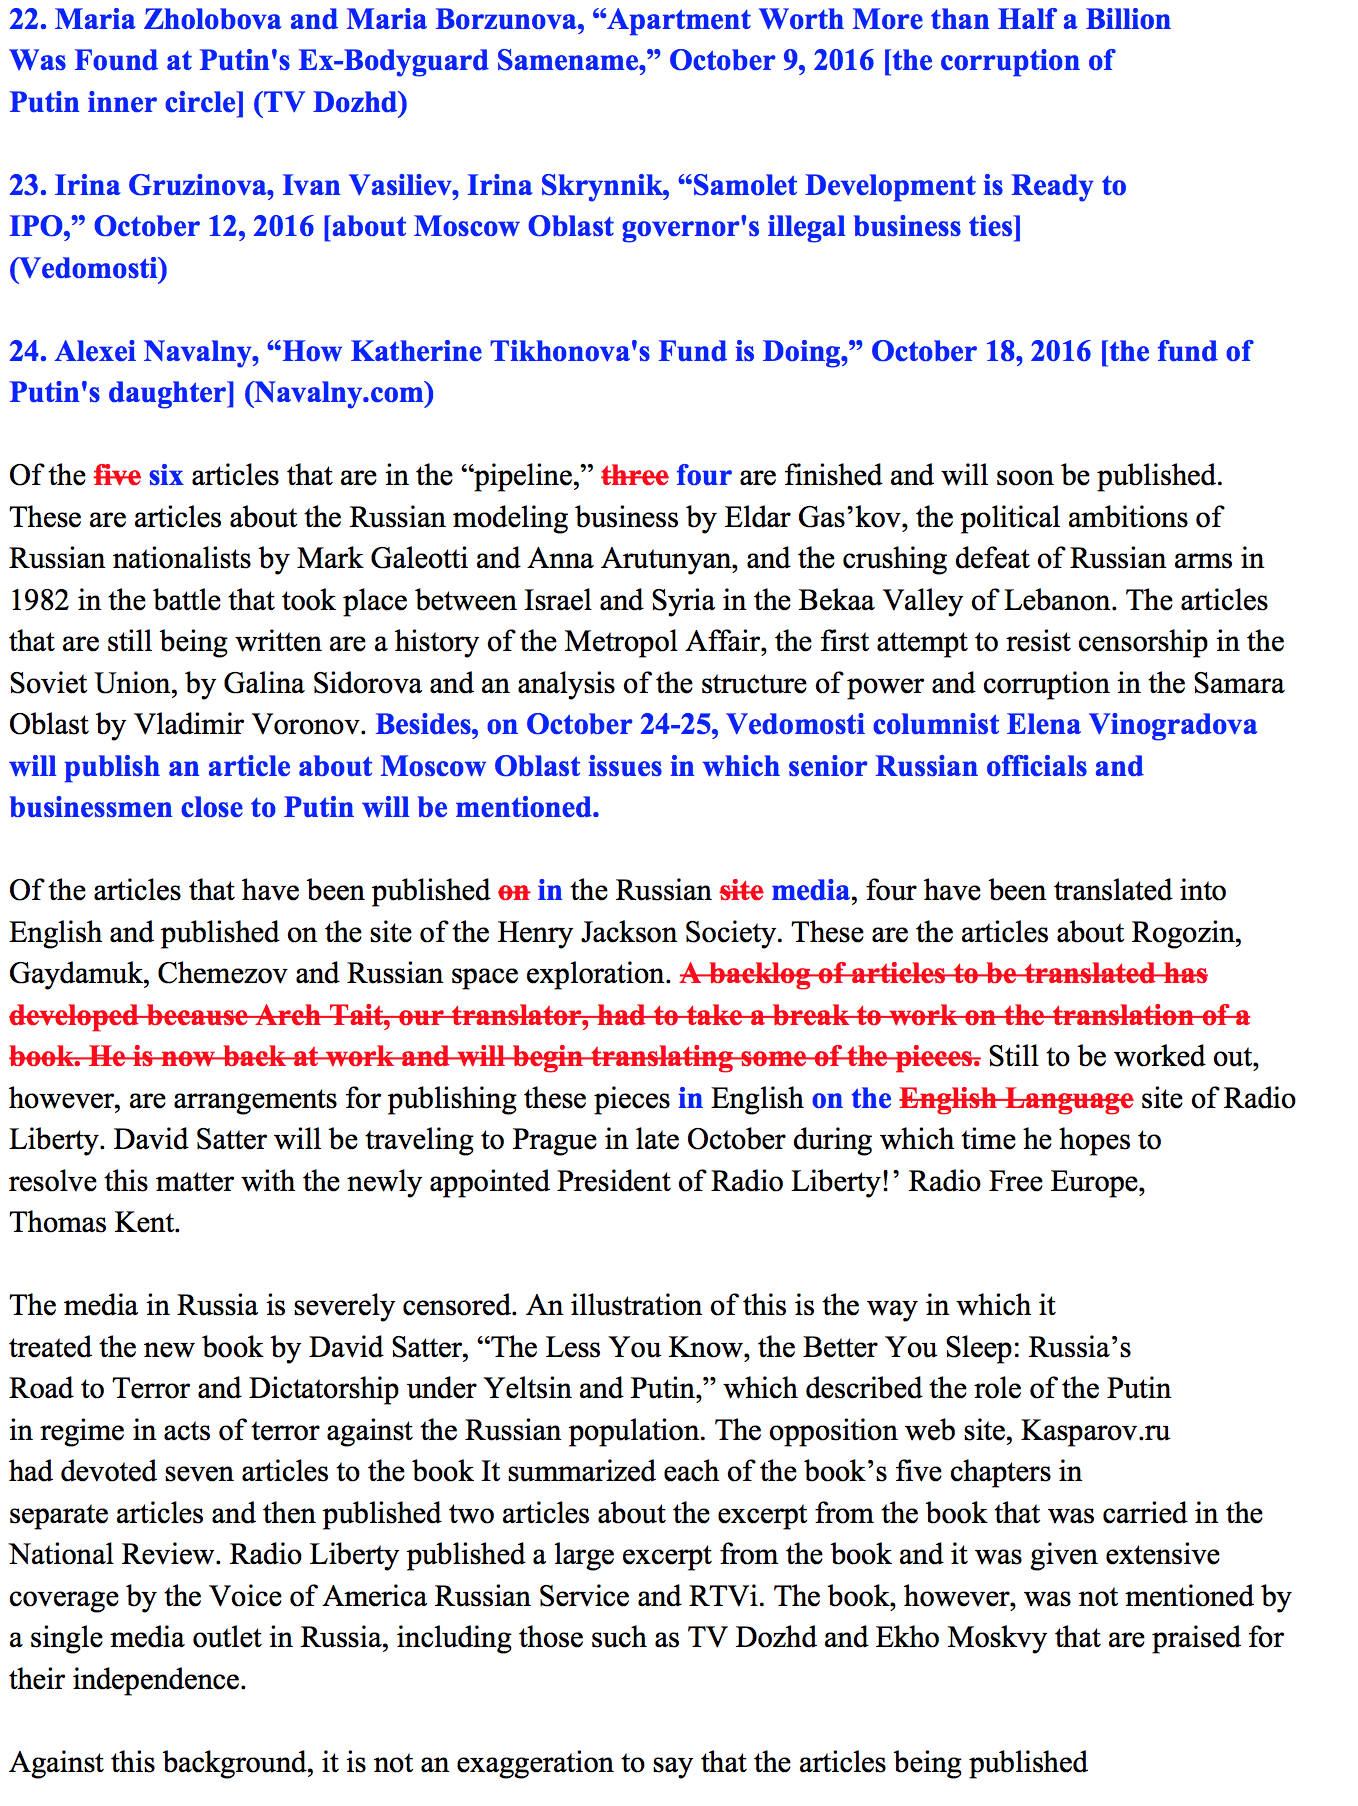 Figure 28 C: Full text of the tainted leak released by CyberBerkut showing tainting